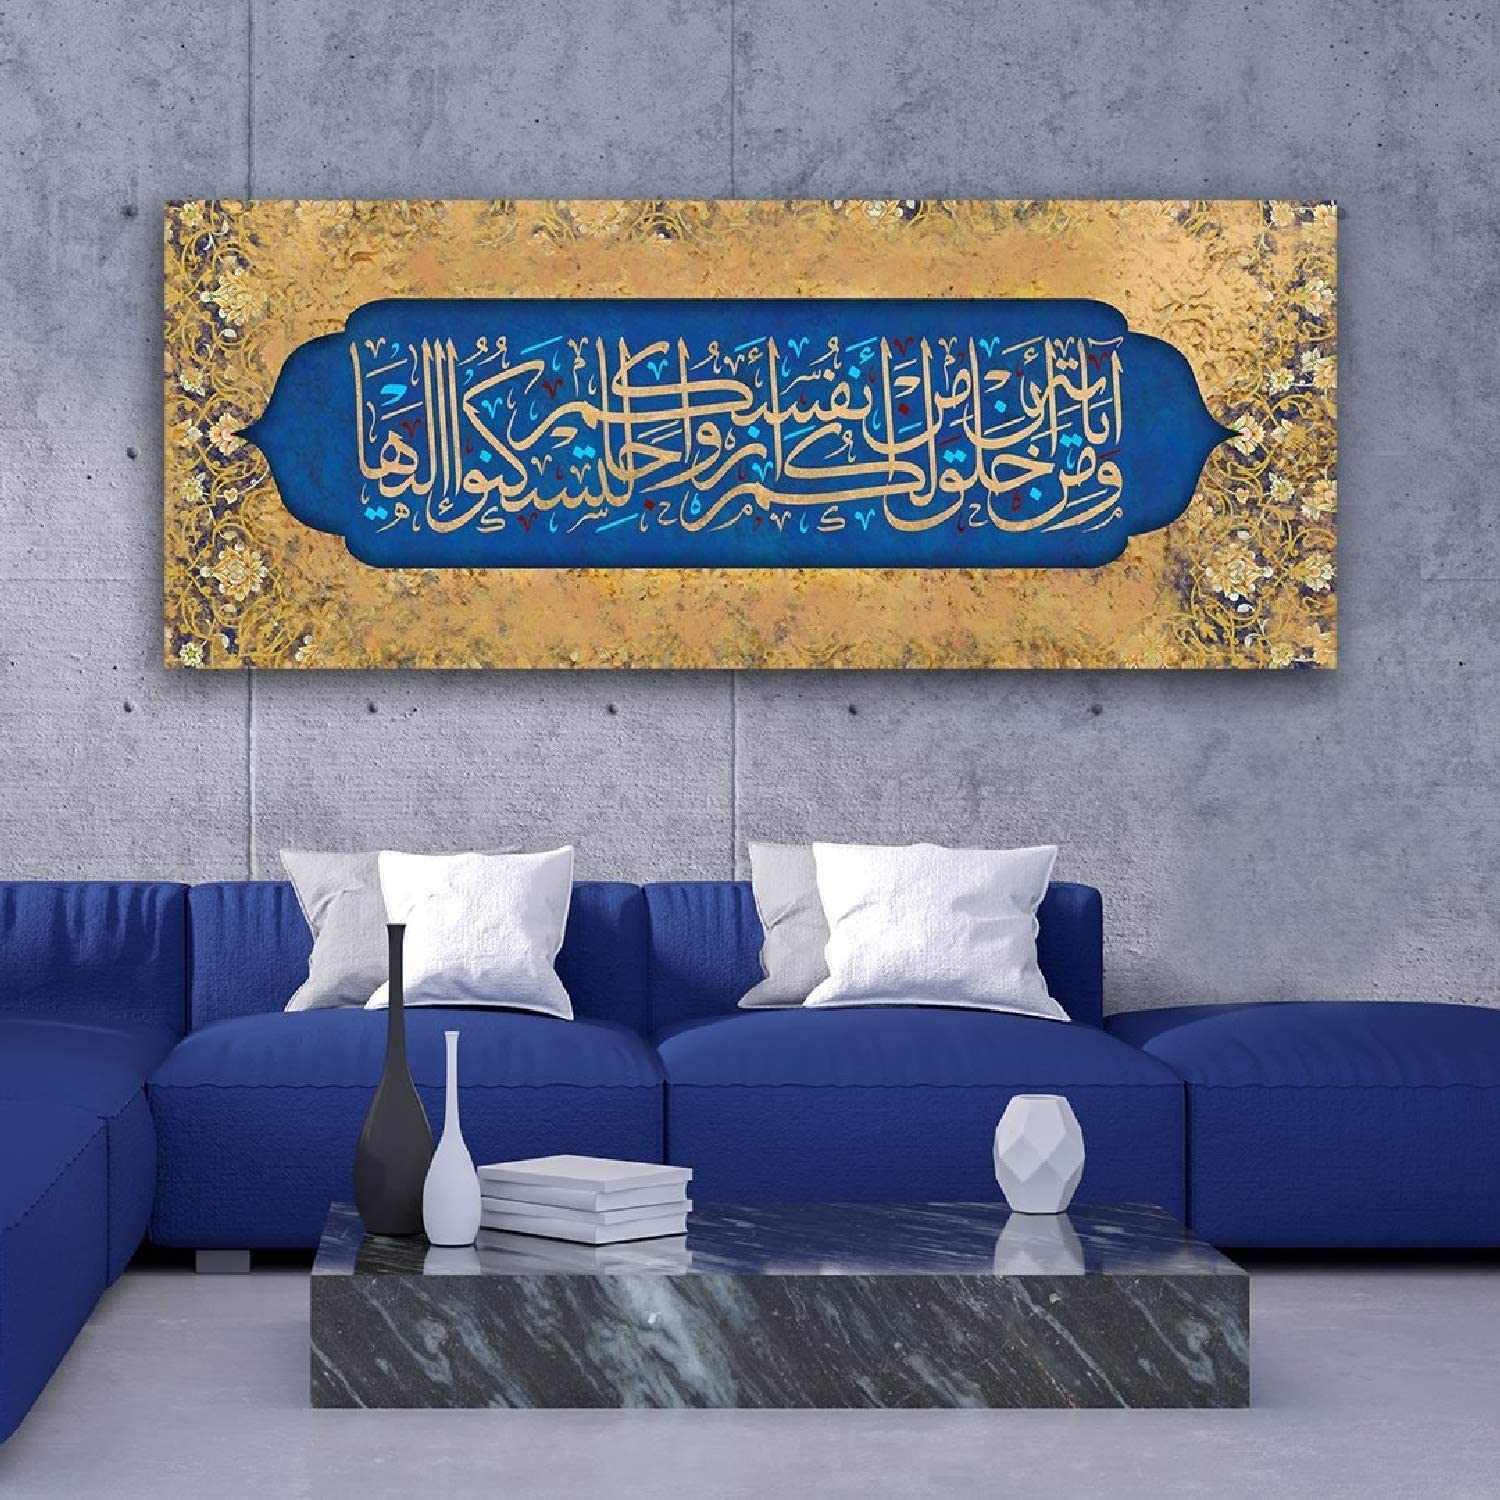 Amazon Com Surah Large Islamic Wall Art Islamic Canvas Arabic Calligraphy Muslim Home Decoration Surah Ar Rum 59x23 6 Inches Posters Prints